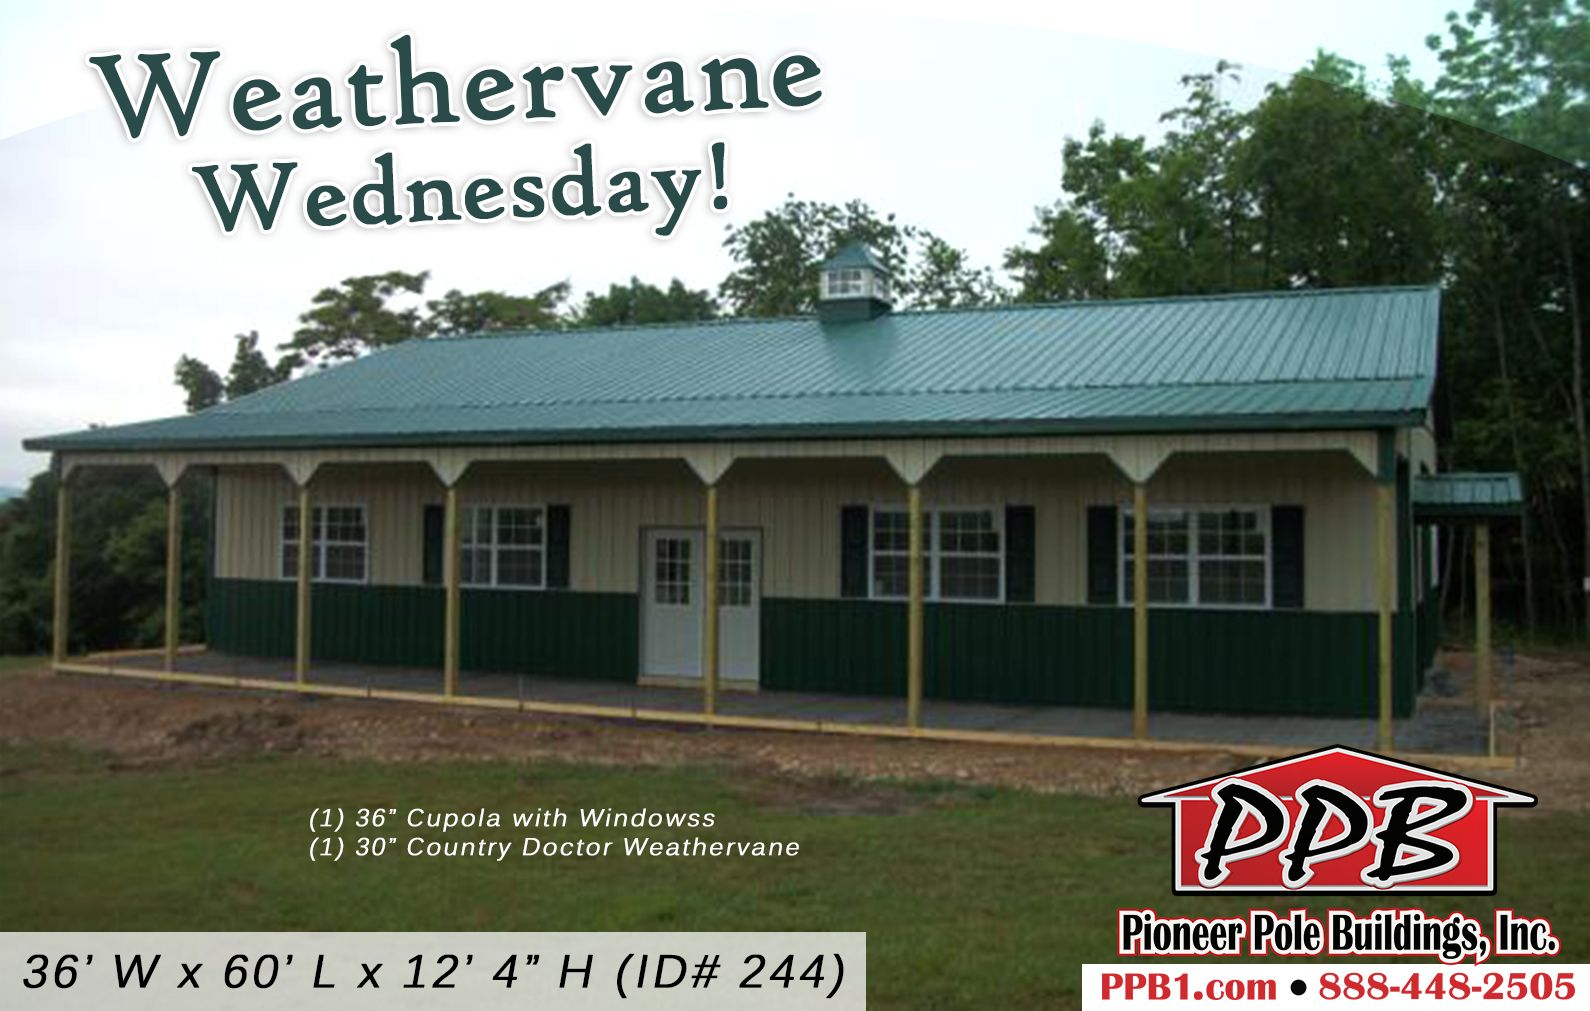 Weathervane Wednesday Dimensions 36 W X 60 L X 12 4 H Id 244 36 Standard Trusses 4 On Center 4 12 P Modern Roofing Roof Design Roof Architecture